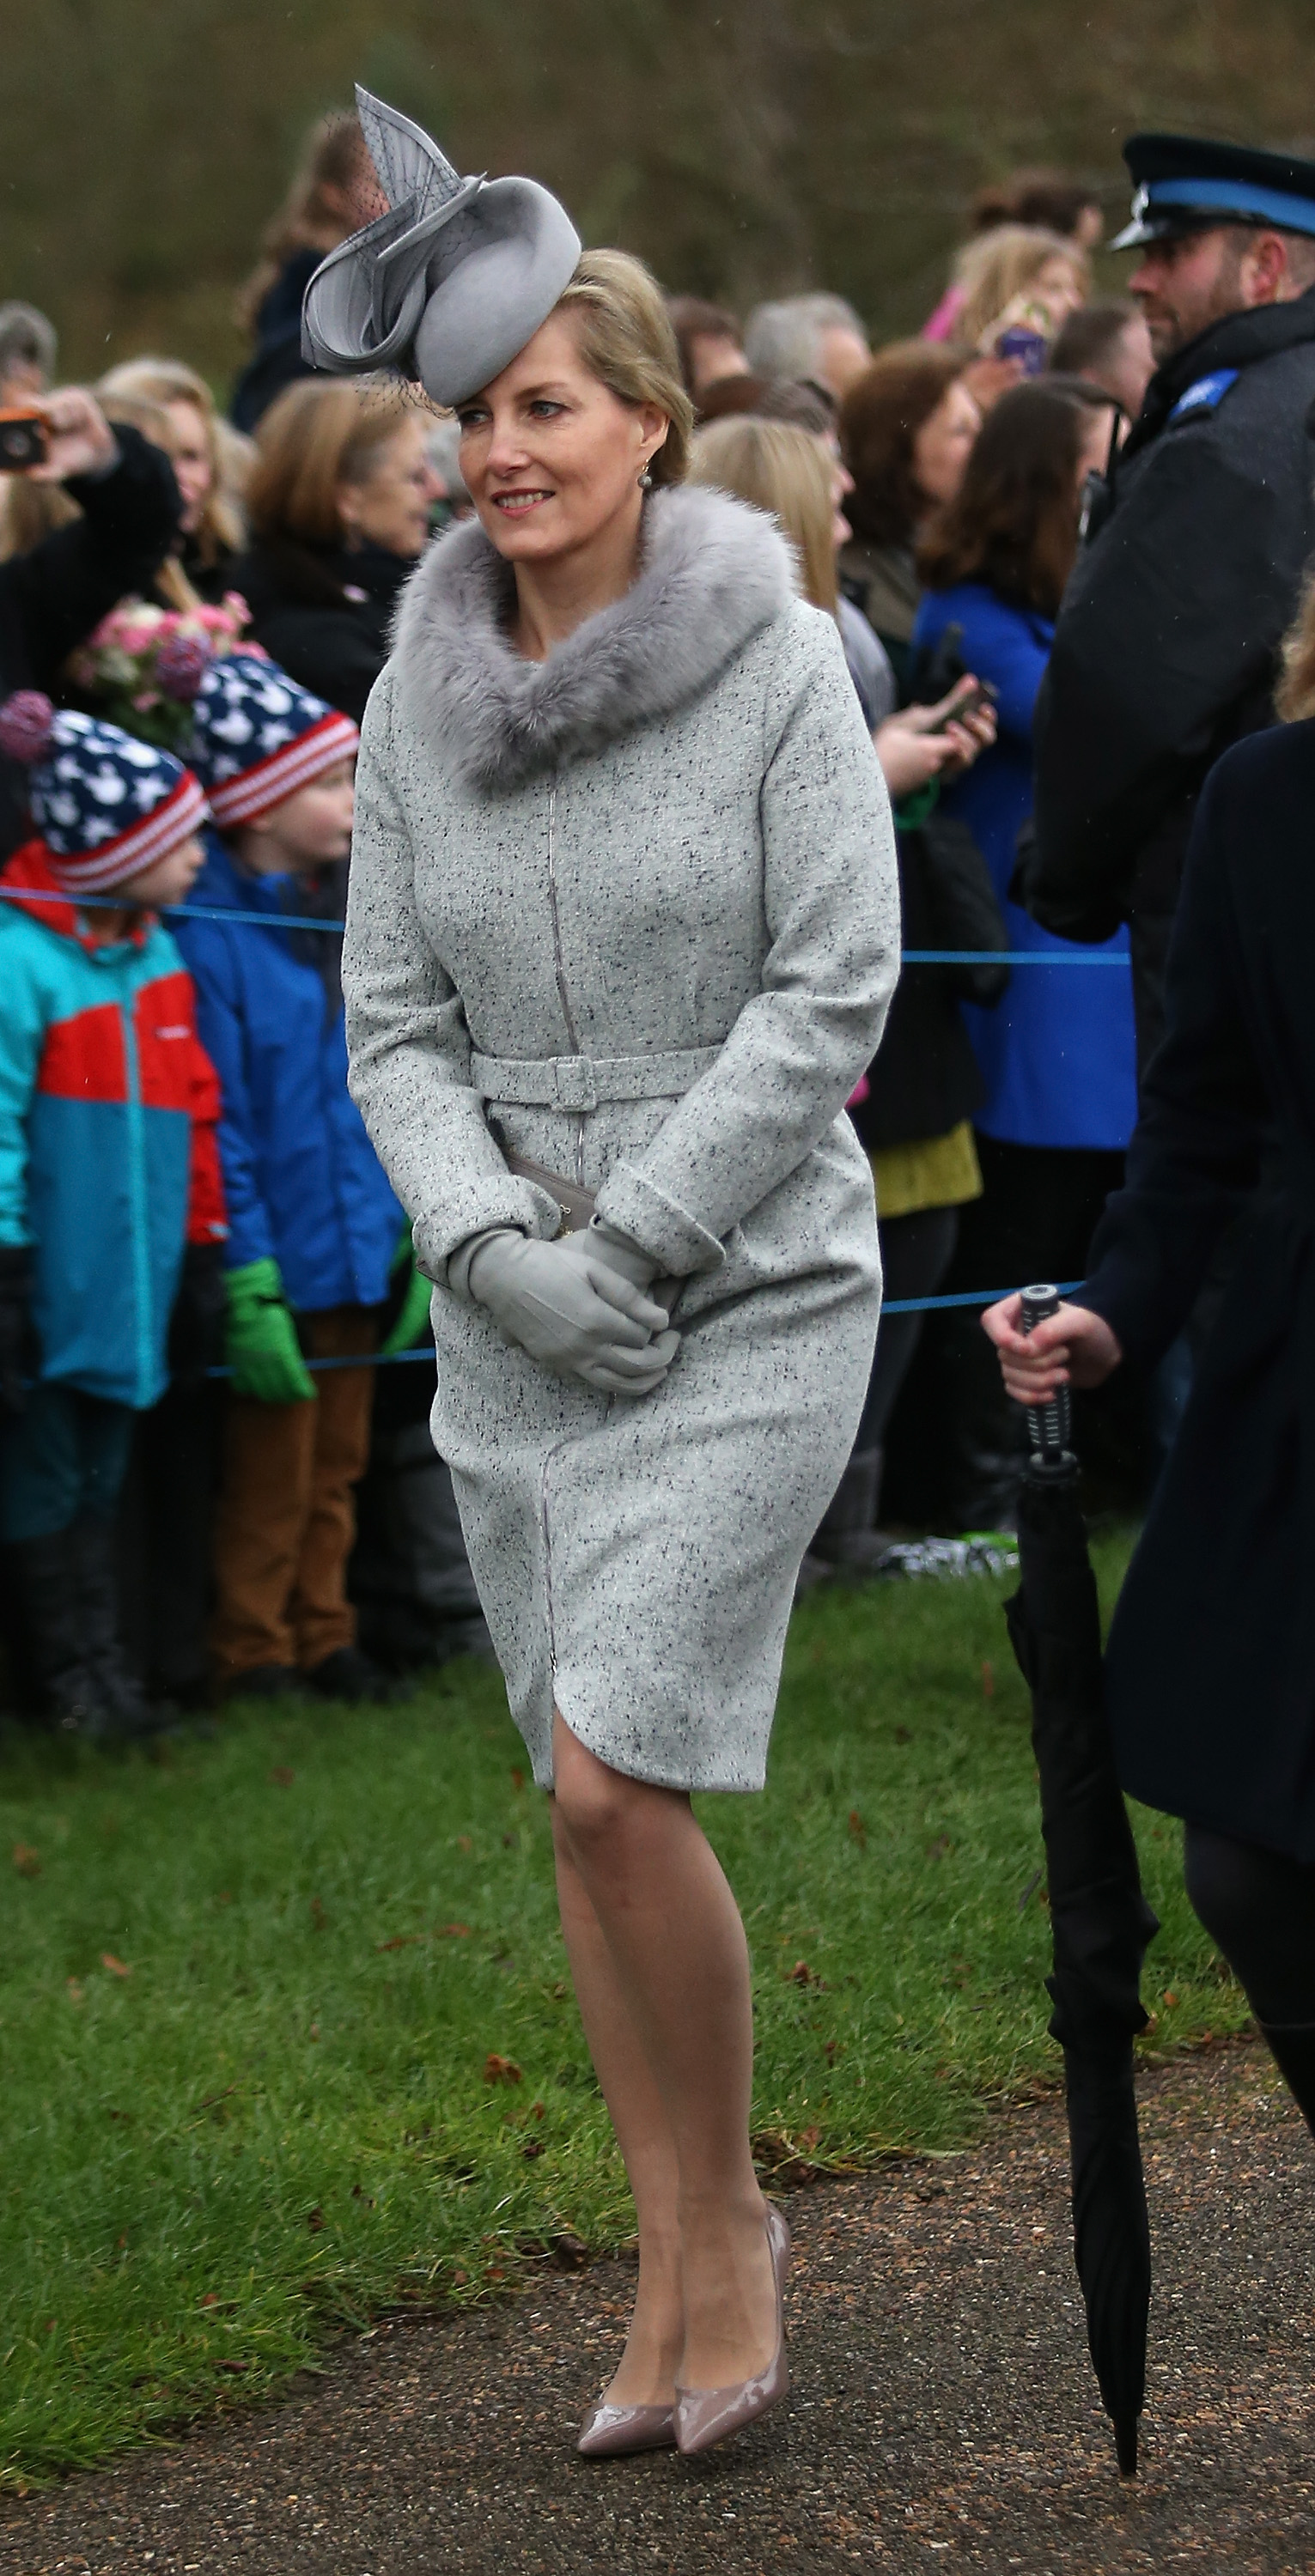 KING'S LYNN, ENGLAND - DECEMBER 25: Sophie, Countess of Wessex attends a Christmas Day church service at Sandringham on December 25, 2015 in King's Lynn, England. (Photo by Chris Jackson/Getty Images)